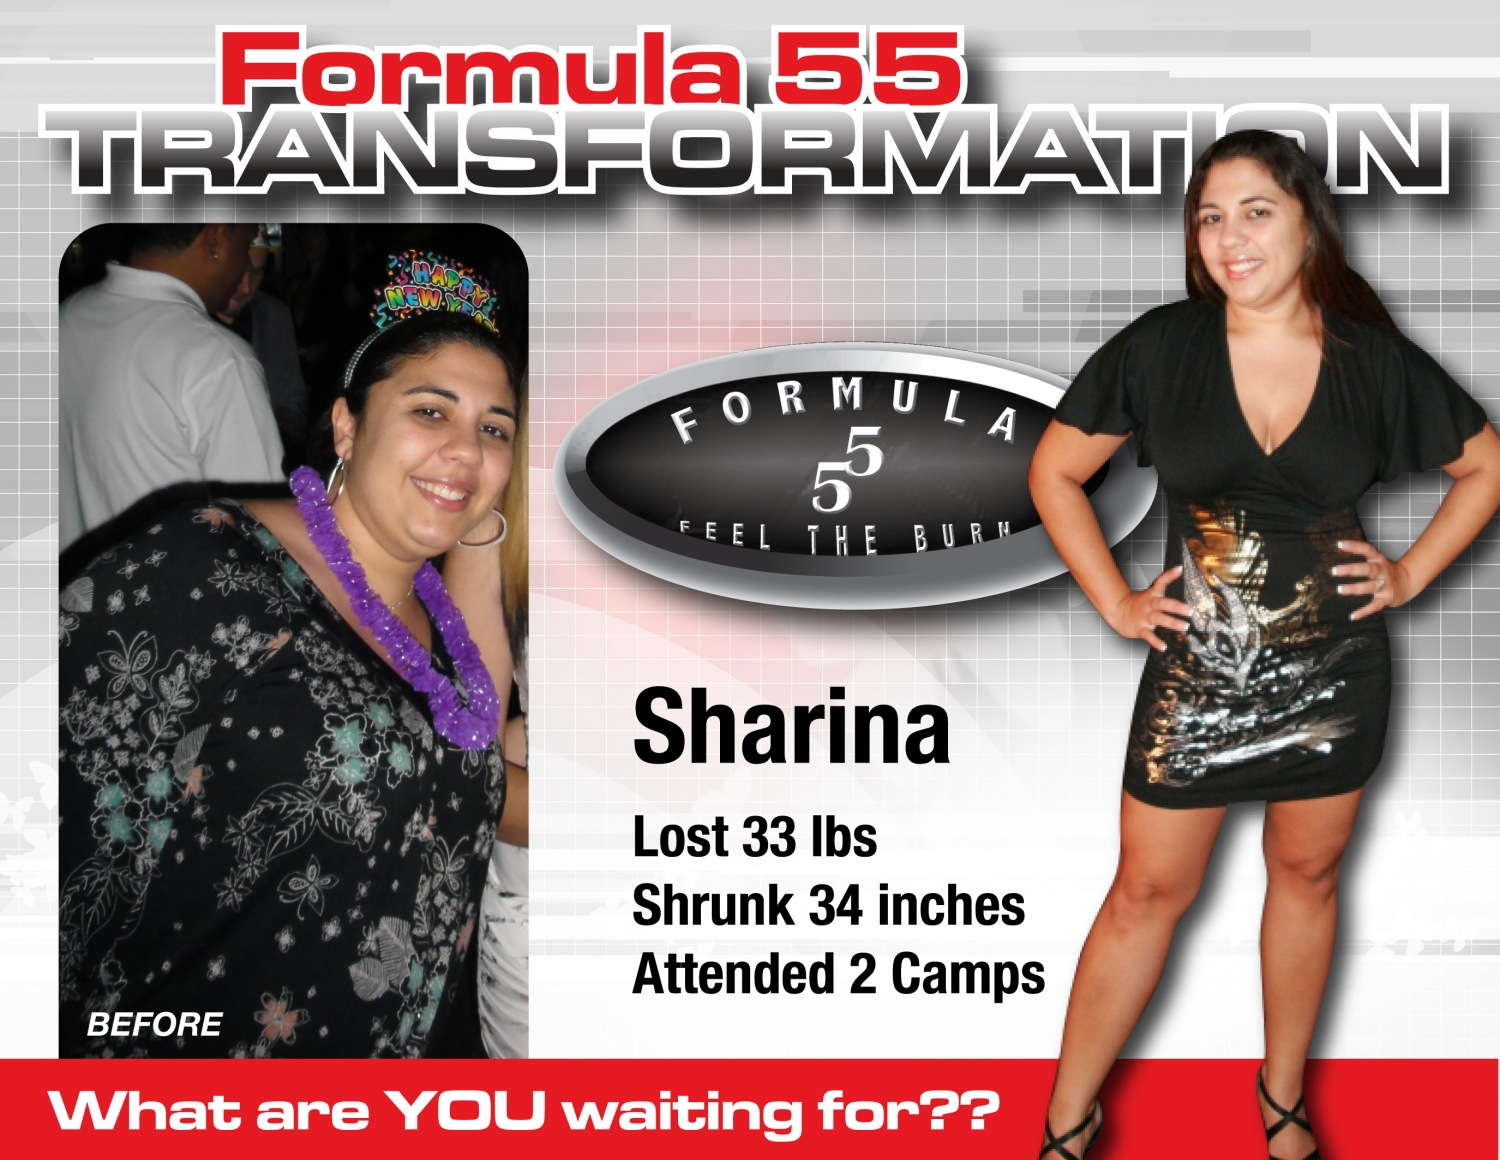 form-55-Transformation-Sharina.jpg